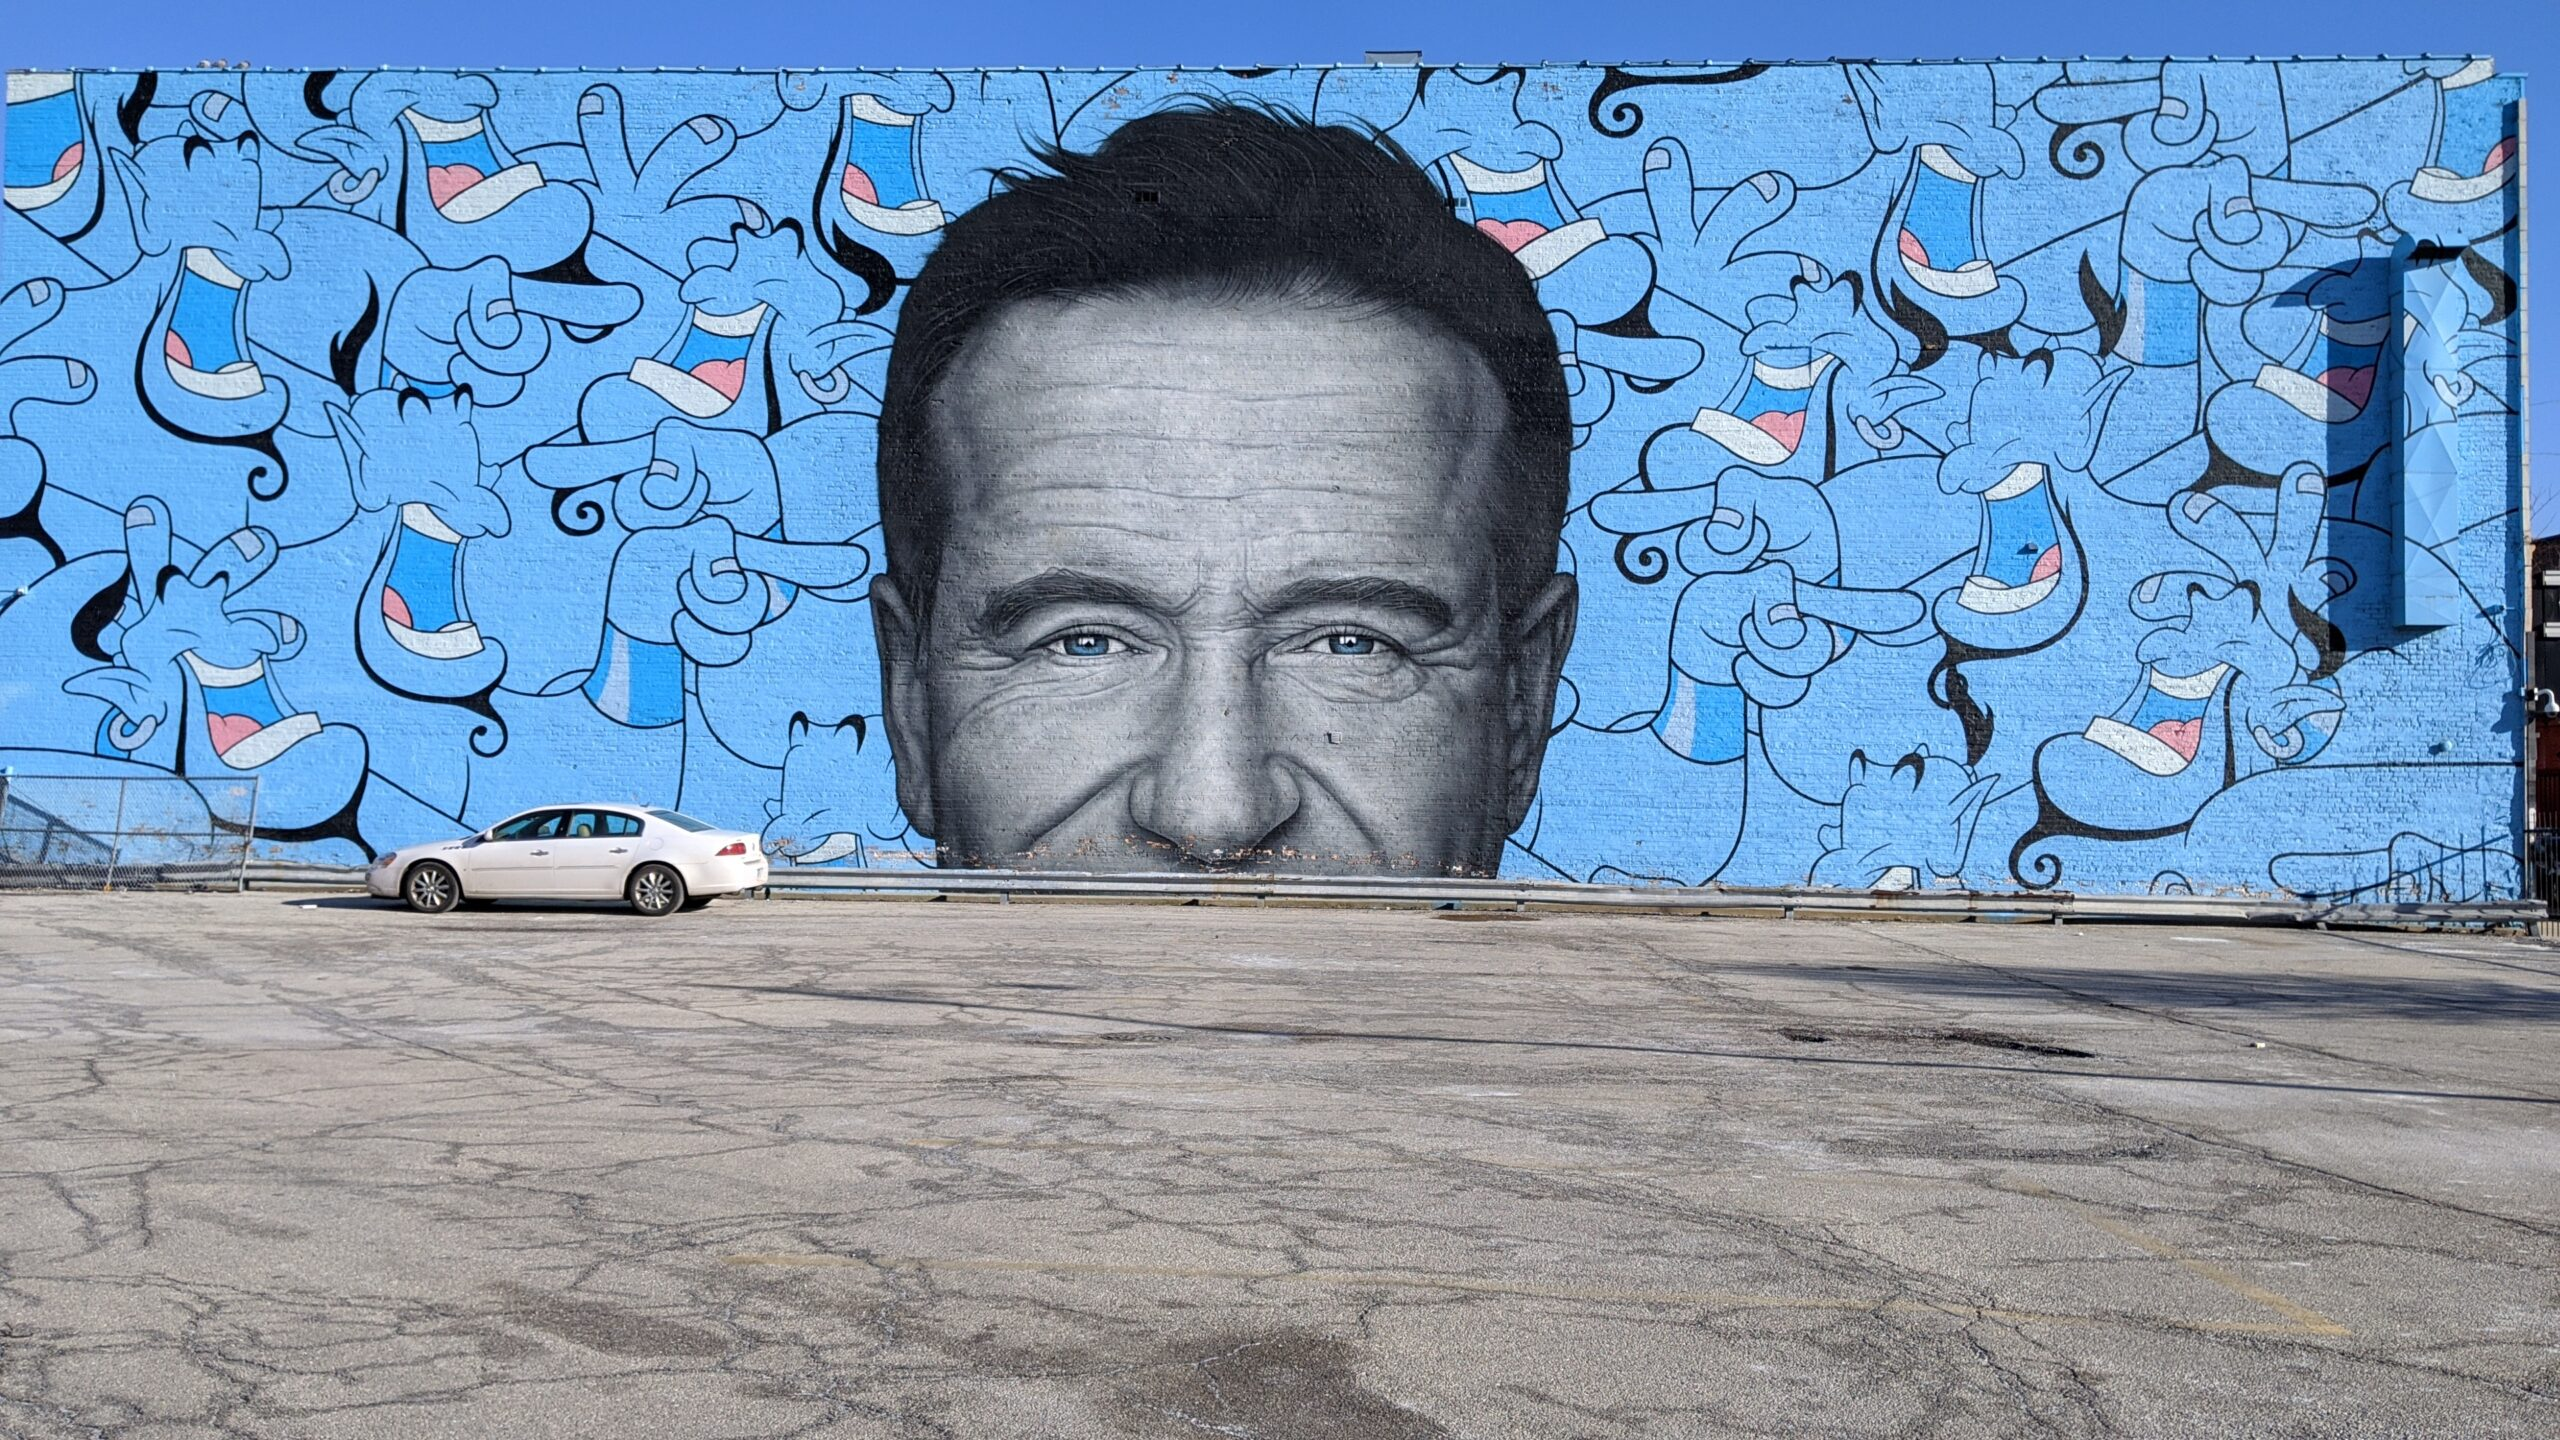 Robin Williams and Genie Mural in Chicago